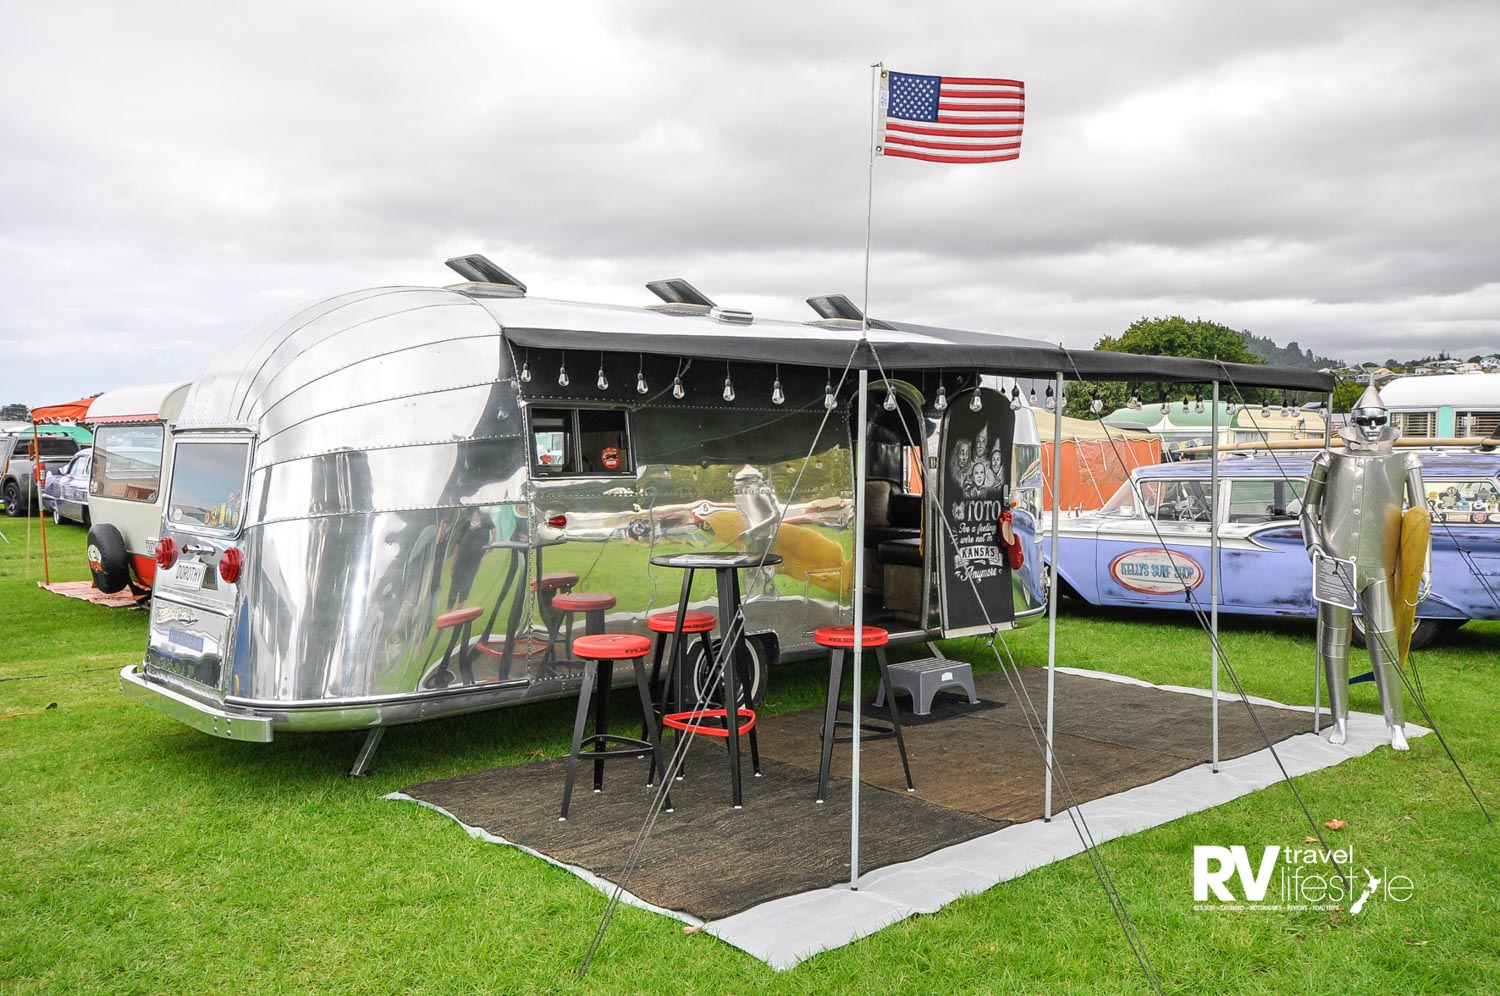 The Airstream on show at the 2019 Repco Beach Hop